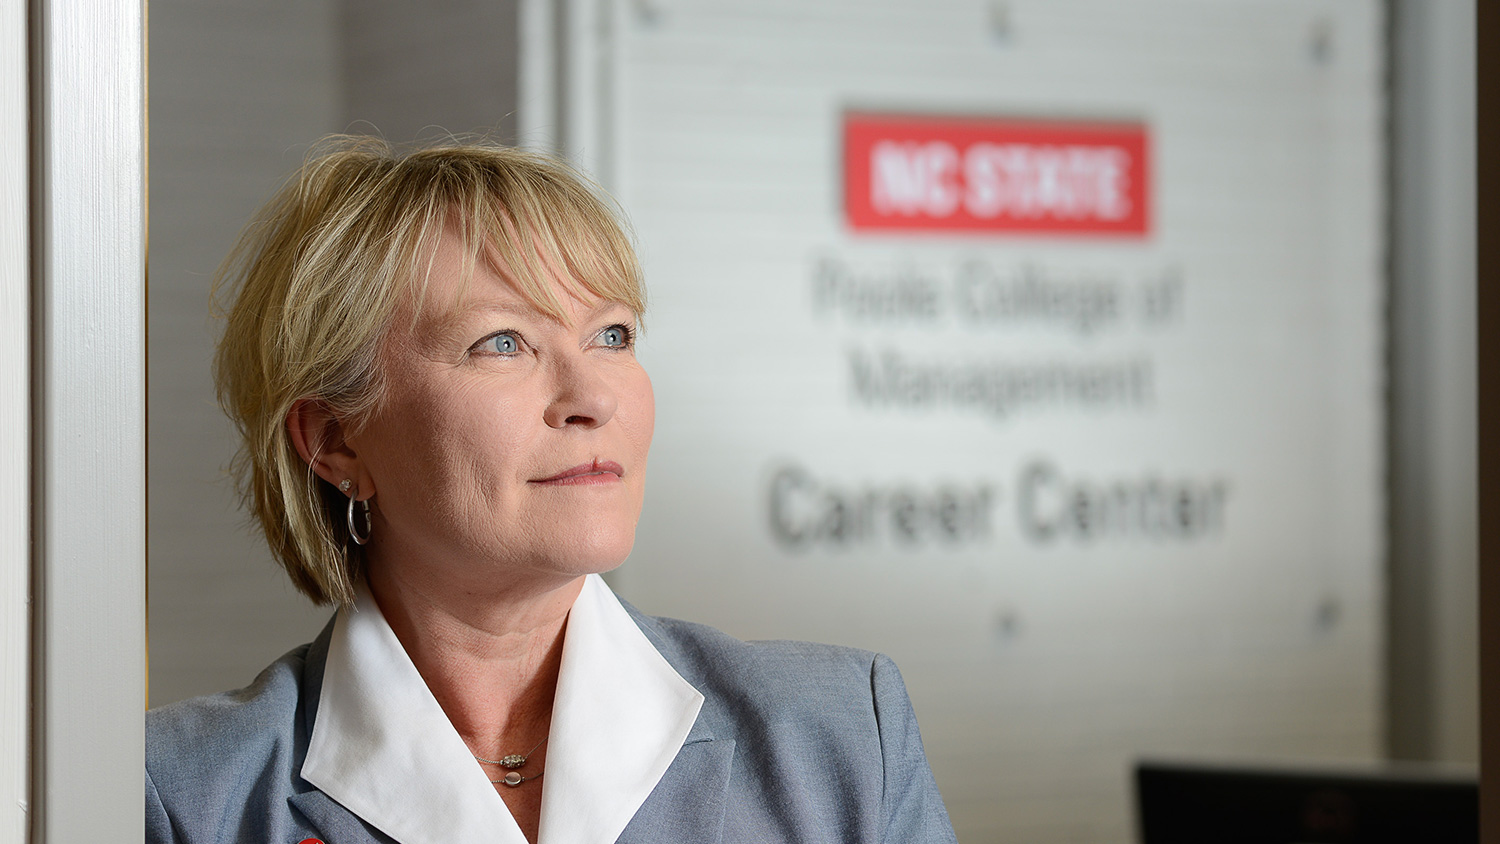 Annette L. Ranft, Poole College's fourth dean, at doorway to the college's Career Center.